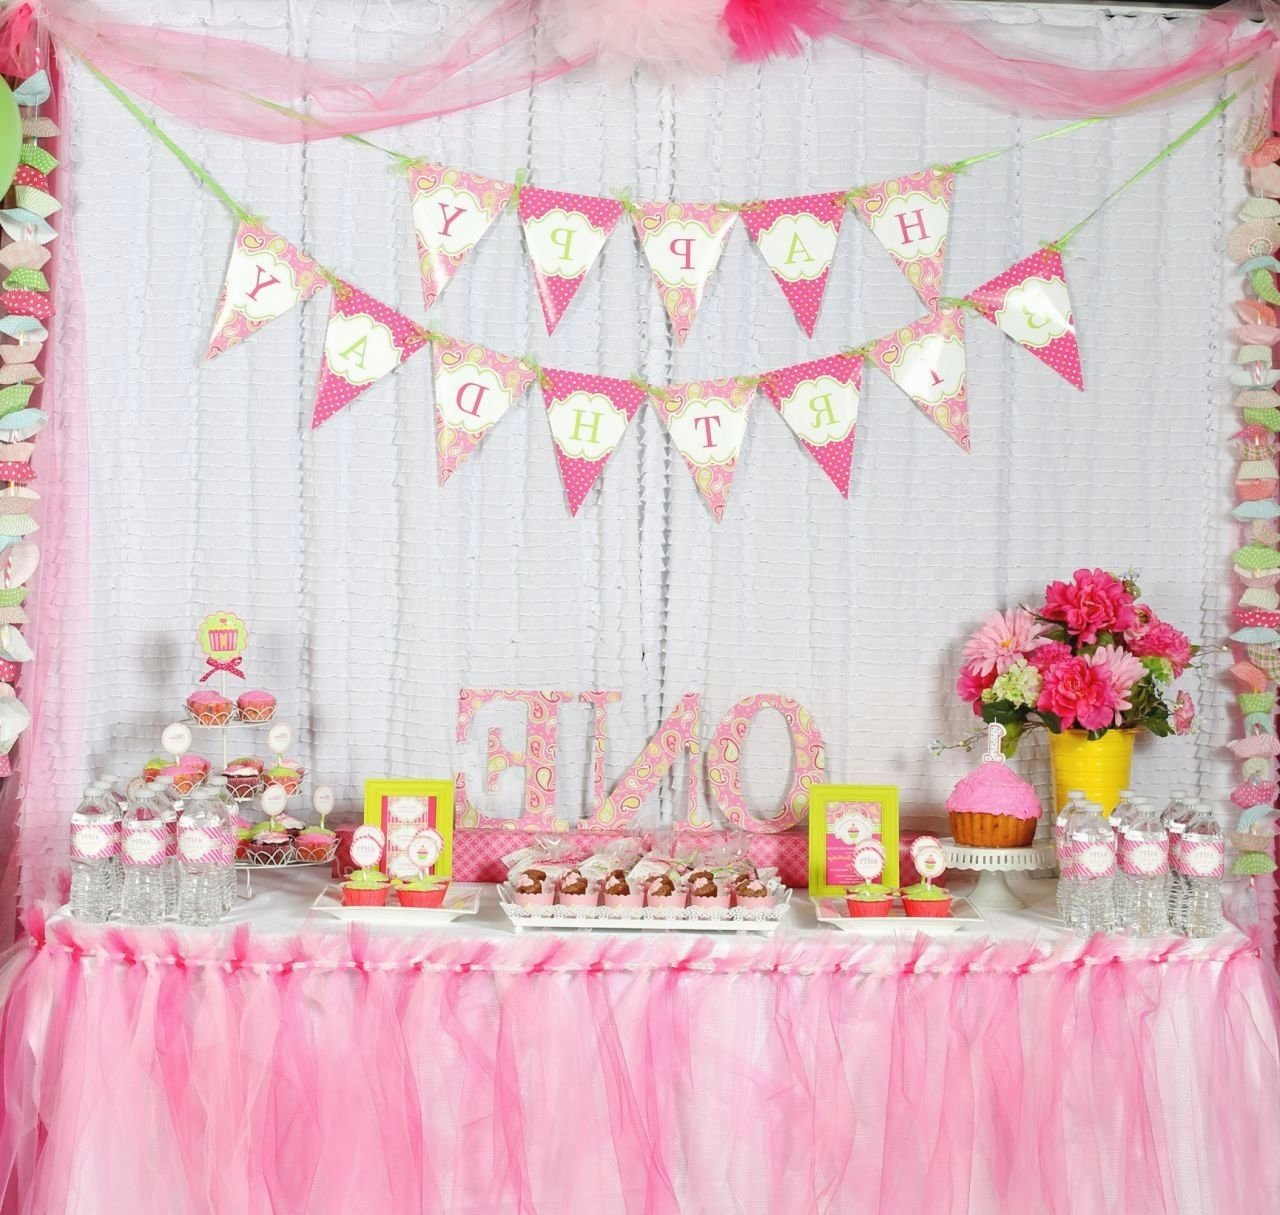 10 Fantastic First Birthday Party Decoration Ideas Decorations For Baby Girl 1st Decorating Of